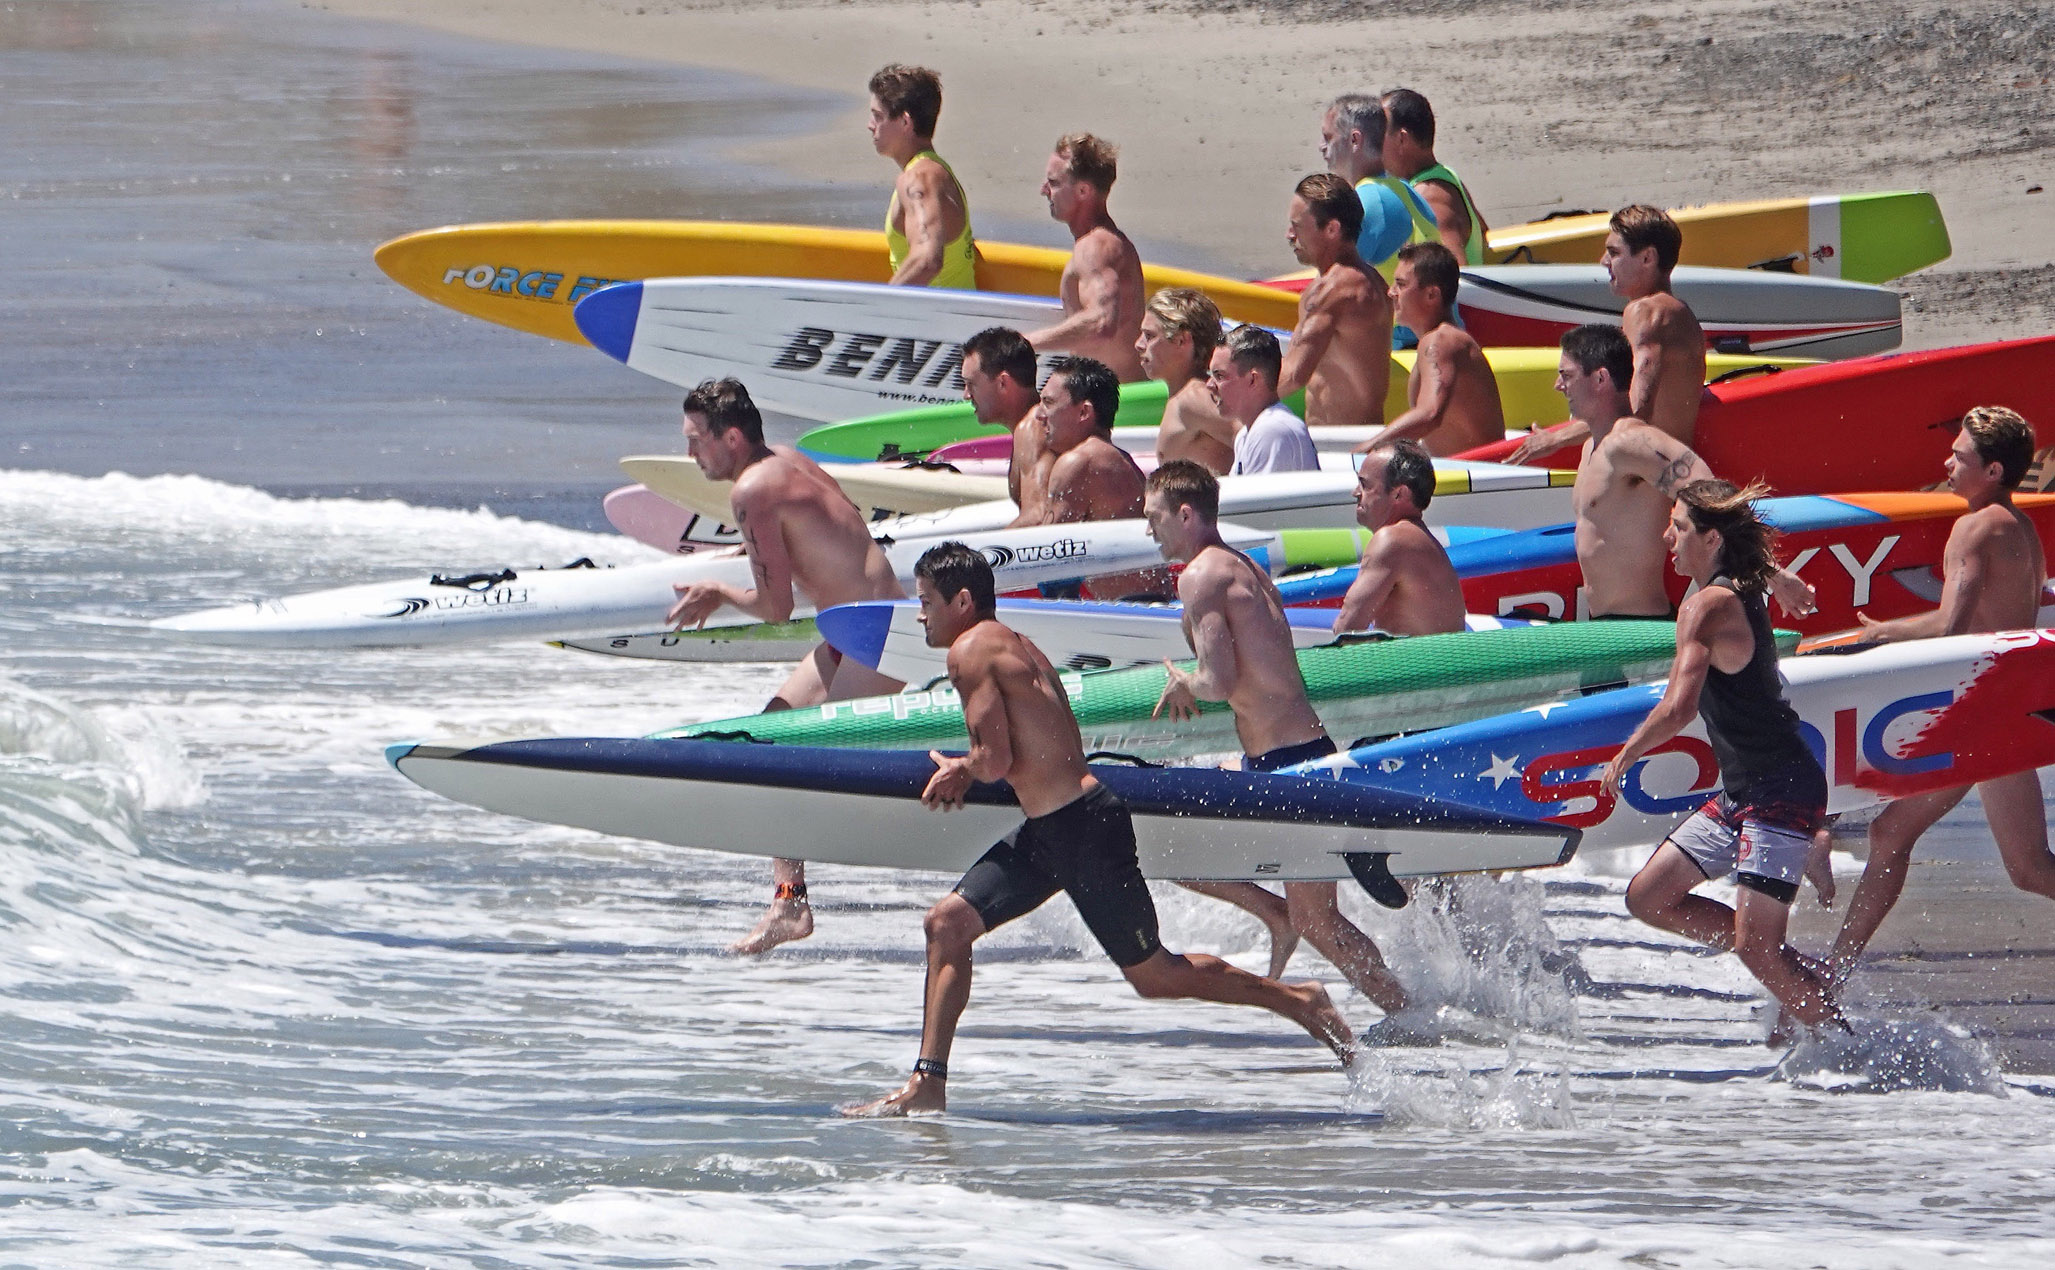 It's off and running for a paddle race at the San Clemente Ocean Festival, dubbed 'The Greatest Show on Surf.' Photo: Fred Swegles